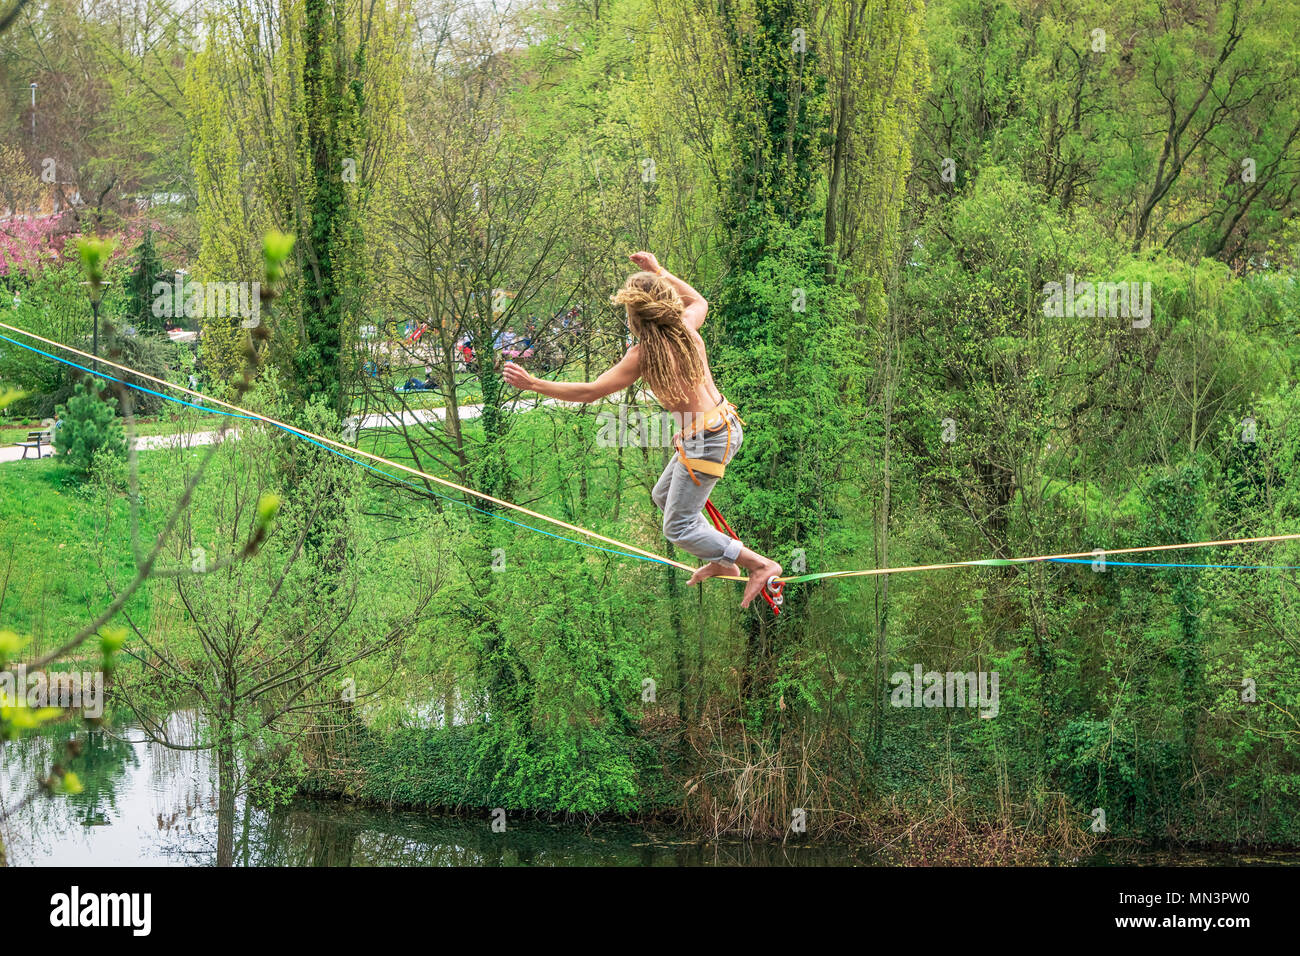 Young male tightrope walker walking on a slackline suspended in the air in a park, Strasbourg, France. - Stock Image